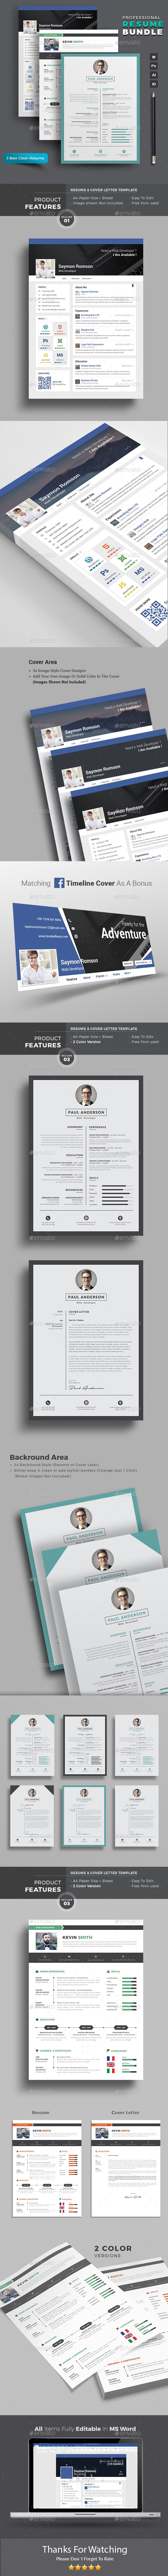 25 best ideas about resume software on